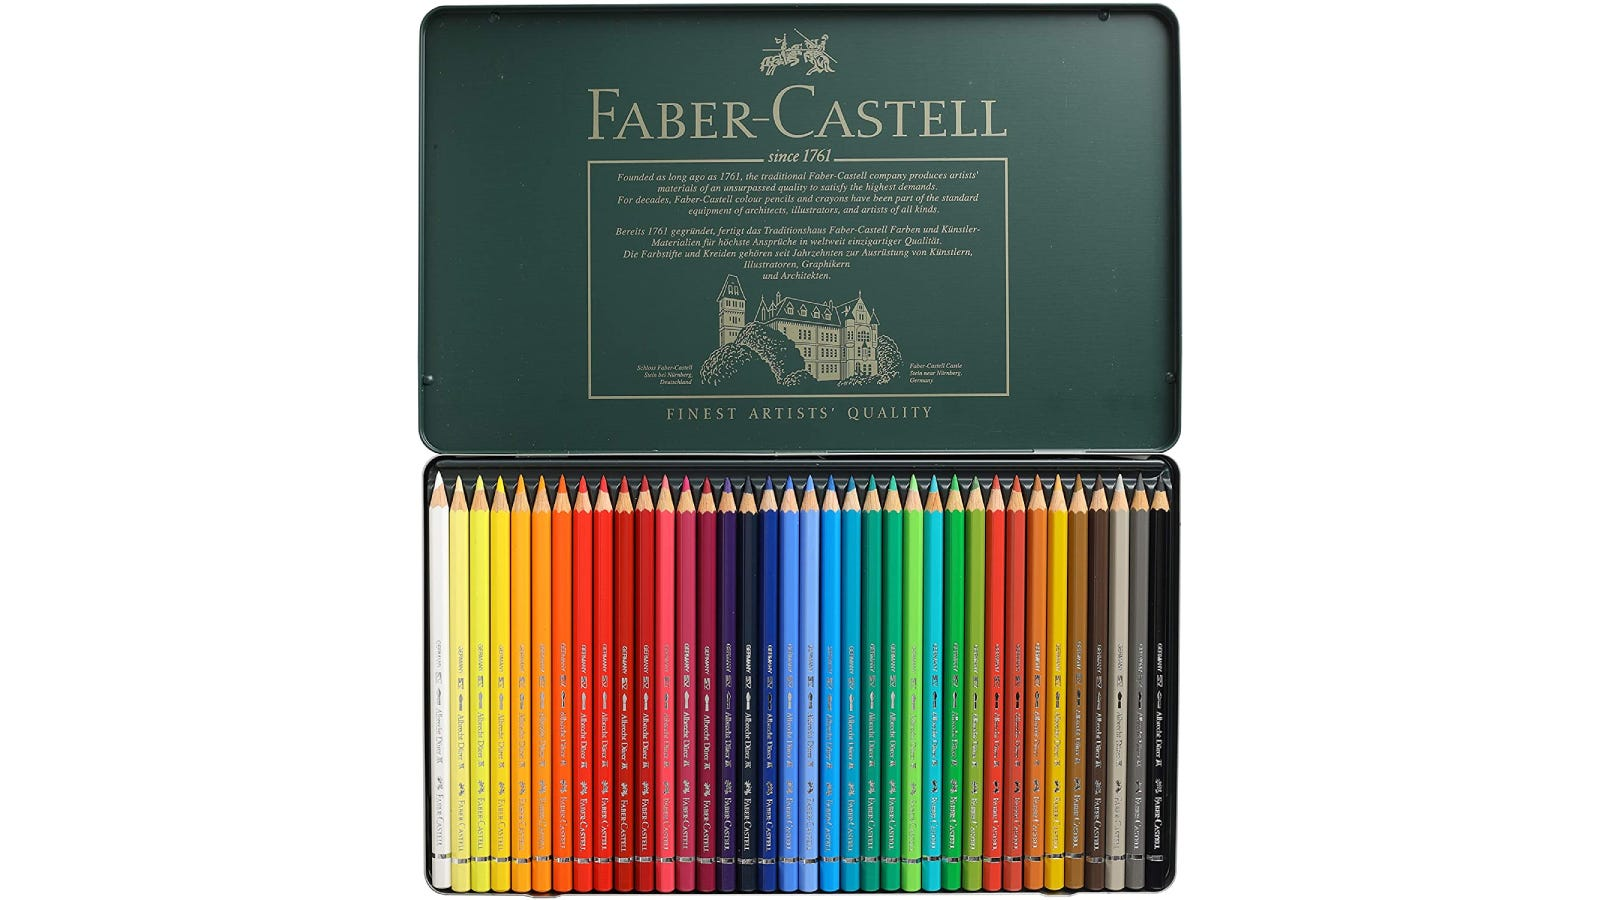 Open Faber-Castell box showing inside of lid at top and row of watercolor pencils at bottom